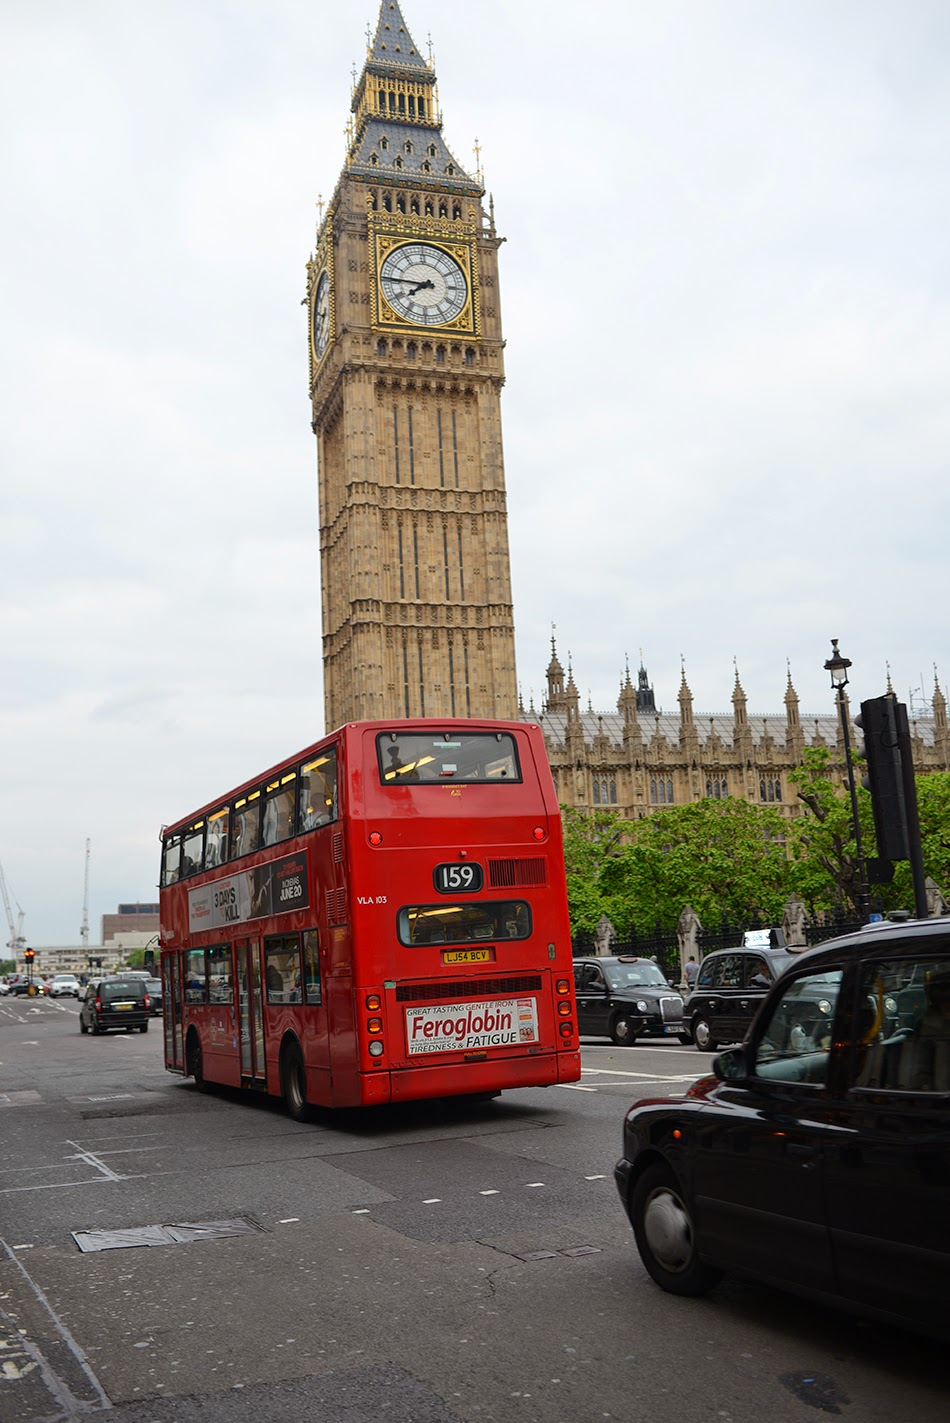 pretty nice d3543 992f3 Arriving back to one of my favorite places EVER,  London. The double decker  red bus s, phone booths and architecture just get me going!